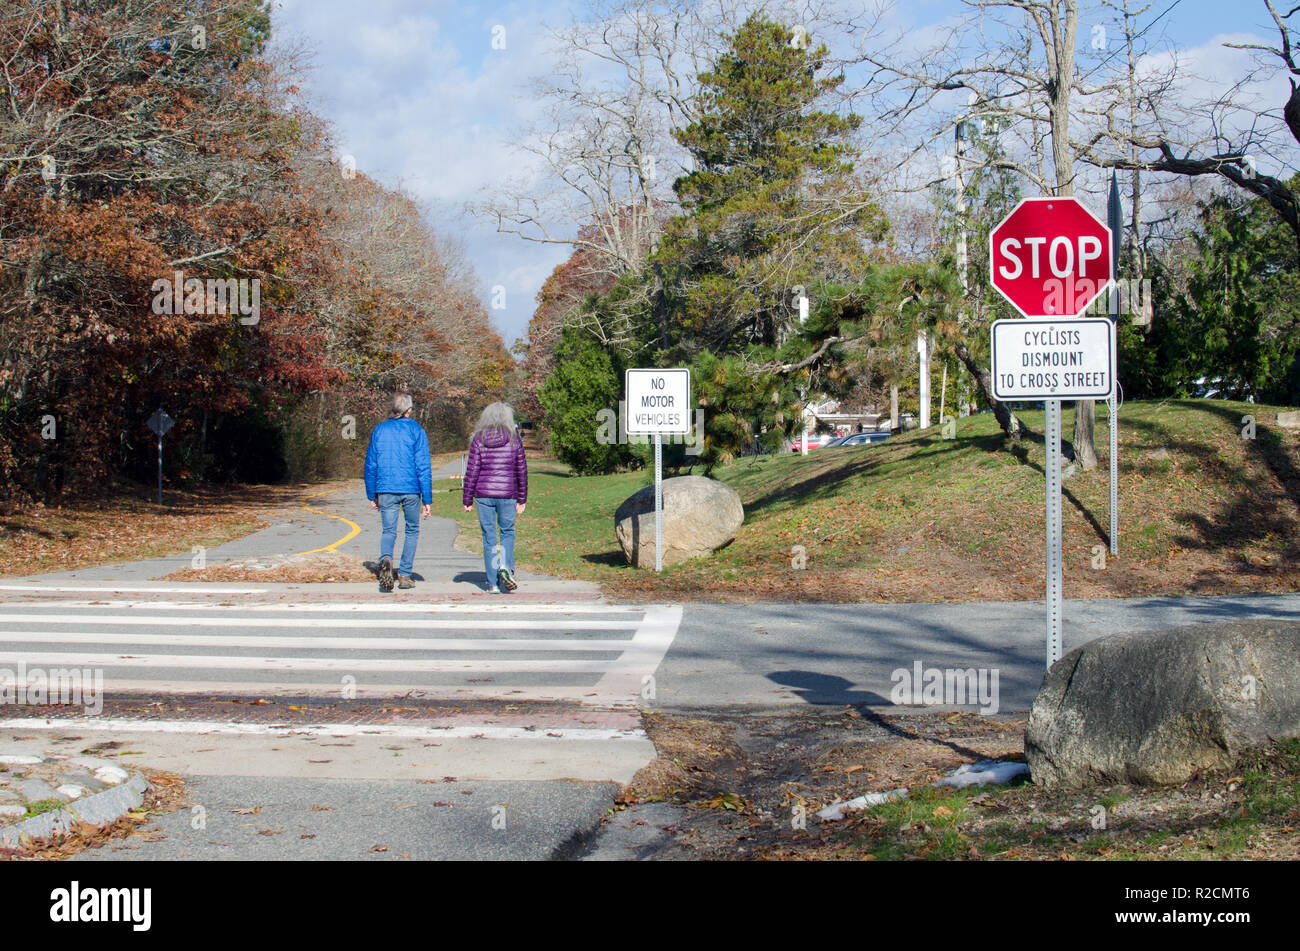 Couple walking on Shining Sea Bikeway  in Falmouth, Cape Cod at road crossing with Cyclists Dismount to Cross Street, No Motor Vehicles & Stop signs - Stock Image